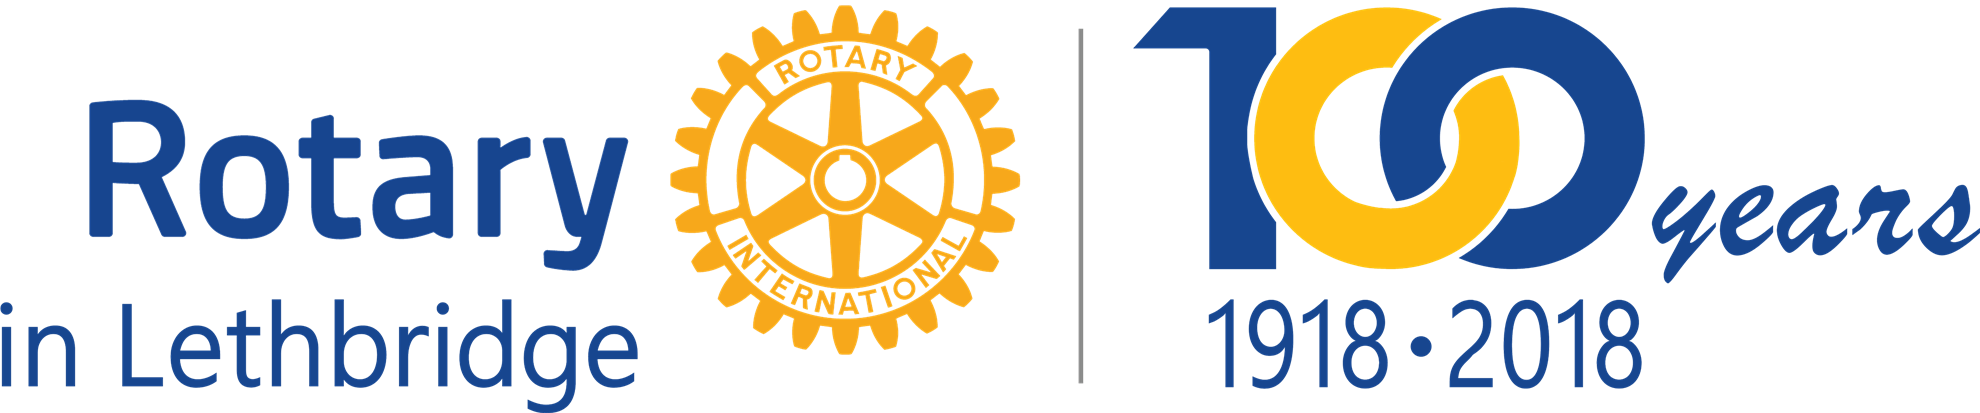 Rotary Club of Lethbridge est. 1918 Monday's @ Noon   The Lethbridge Lodge 320 Scenic Dr S  Lethbridge, AB